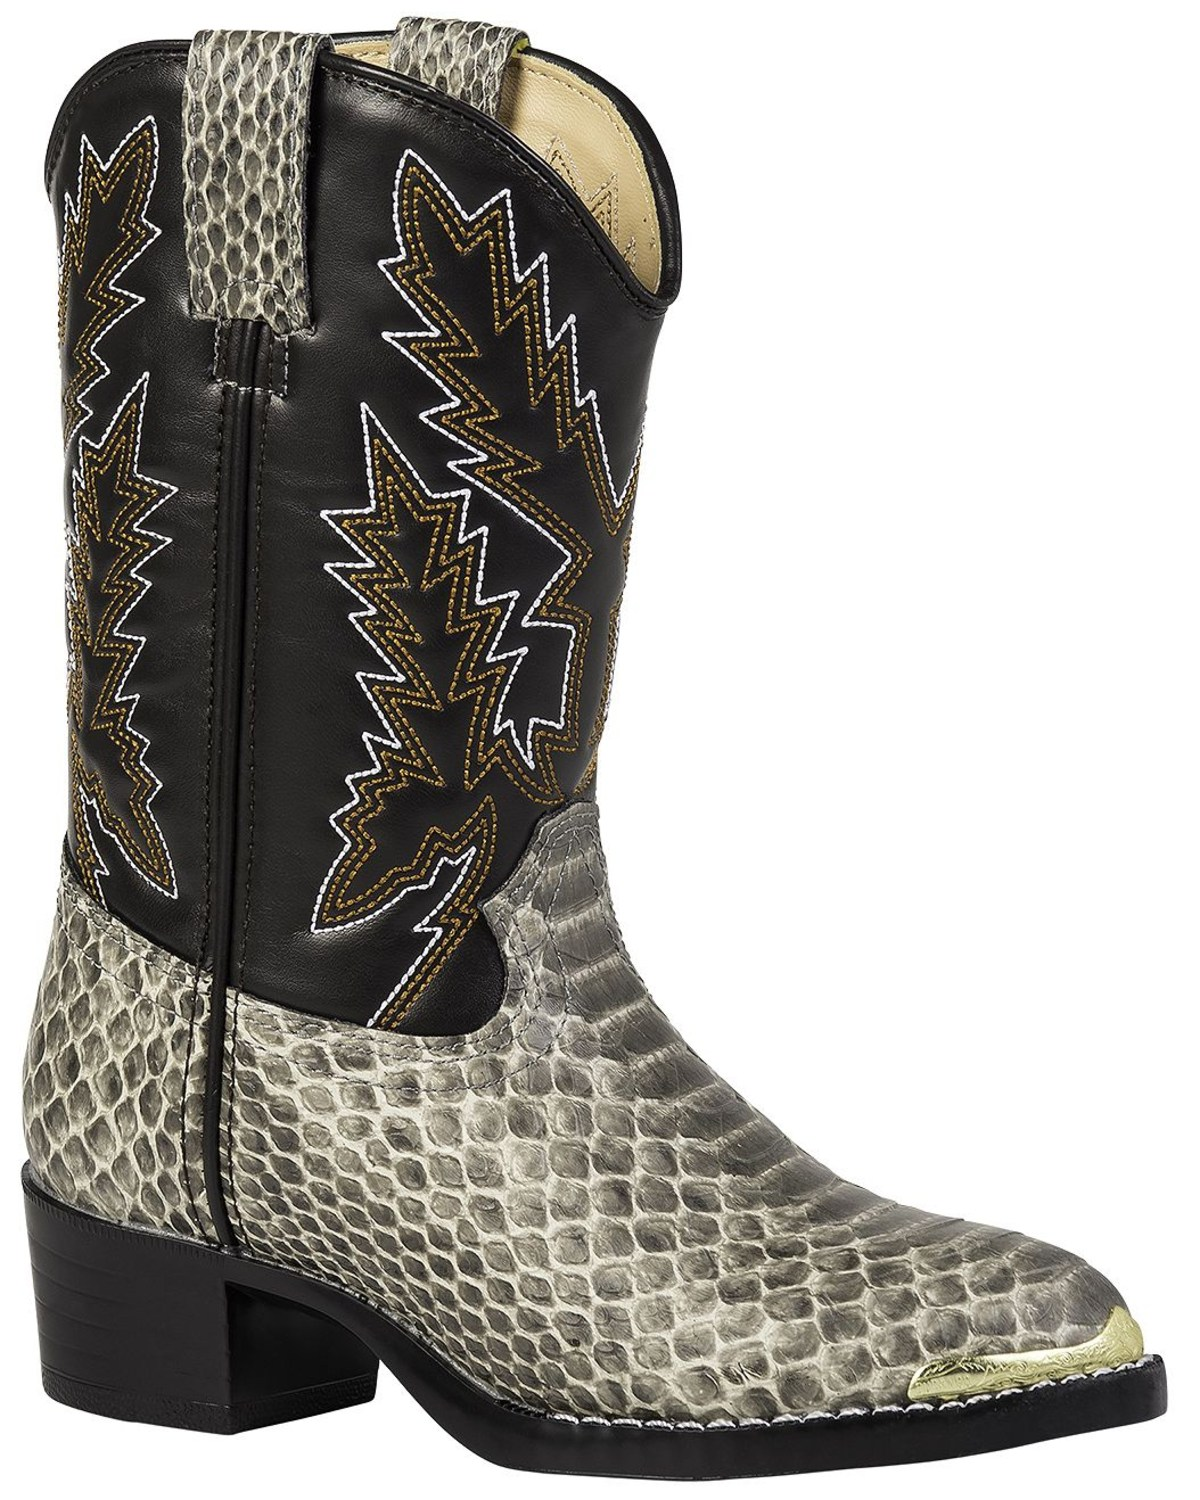 141024ccac2 Durango Youth Snake Print Western Boots